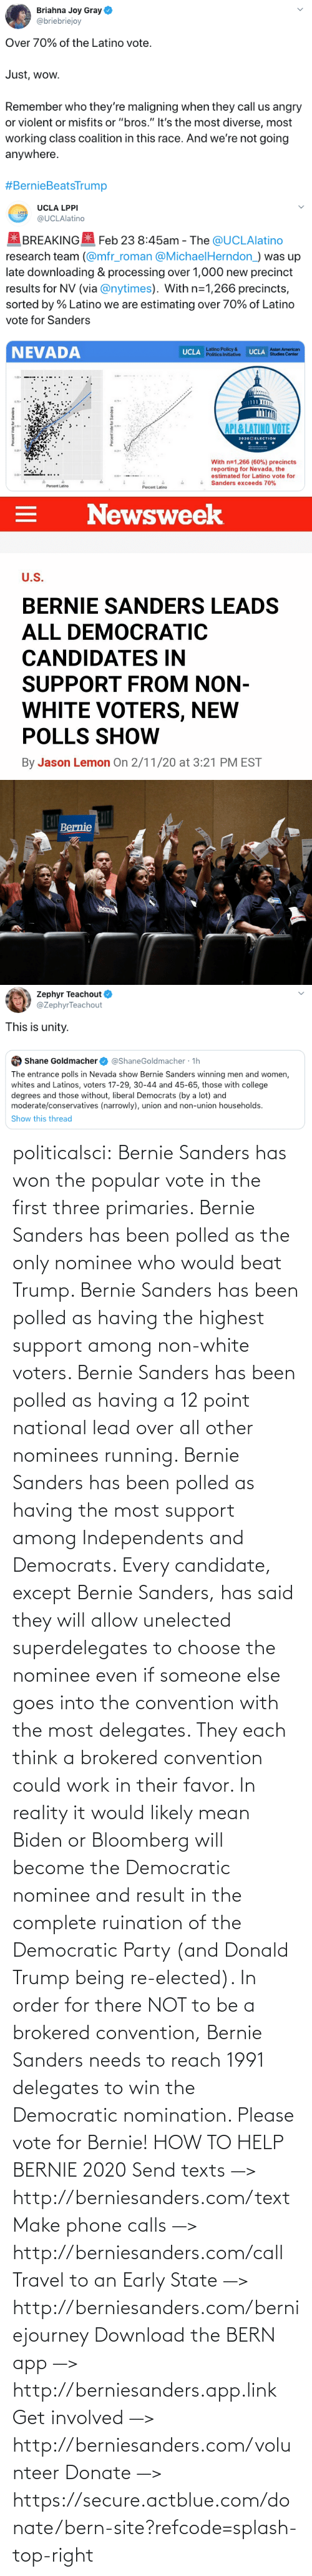 Bernie Sanders: politicalsci: Bernie Sanders has won the popular vote in the first three primaries. Bernie Sanders has  been polled as the only nominee who would beat Trump. Bernie Sanders  has been polled as having the highest support among non-white voters.  Bernie Sanders has been polled as having a 12 point national lead over  all other nominees running. Bernie Sanders has been polled as having the most support among Independents and Democrats.  Every candidate, except Bernie Sanders, has said they will allow  unelected superdelegates to choose the nominee even if someone else goes  into the convention with the most delegates. They each think a brokered  convention could work in their favor. In  reality it would likely mean Biden or Bloomberg will become the  Democratic nominee and result in the complete ruination of the  Democratic Party (and Donald Trump being re-elected). In order for there  NOT to be a brokered  convention, Bernie Sanders needs to reach 1991 delegates to win the  Democratic  nomination. Please vote for Bernie!  HOW TO HELP BERNIE 2020 Send texts —> http://berniesanders.com/text  Make phone calls —> http://berniesanders.com/call  Travel to an Early State —> http://berniesanders.com/berniejourney  Download the BERN app —> http://berniesanders.app.link  Get involved —> http://berniesanders.com/volunteer Donate —> https://secure.actblue.com/donate/bern-site?refcode=splash-top-right